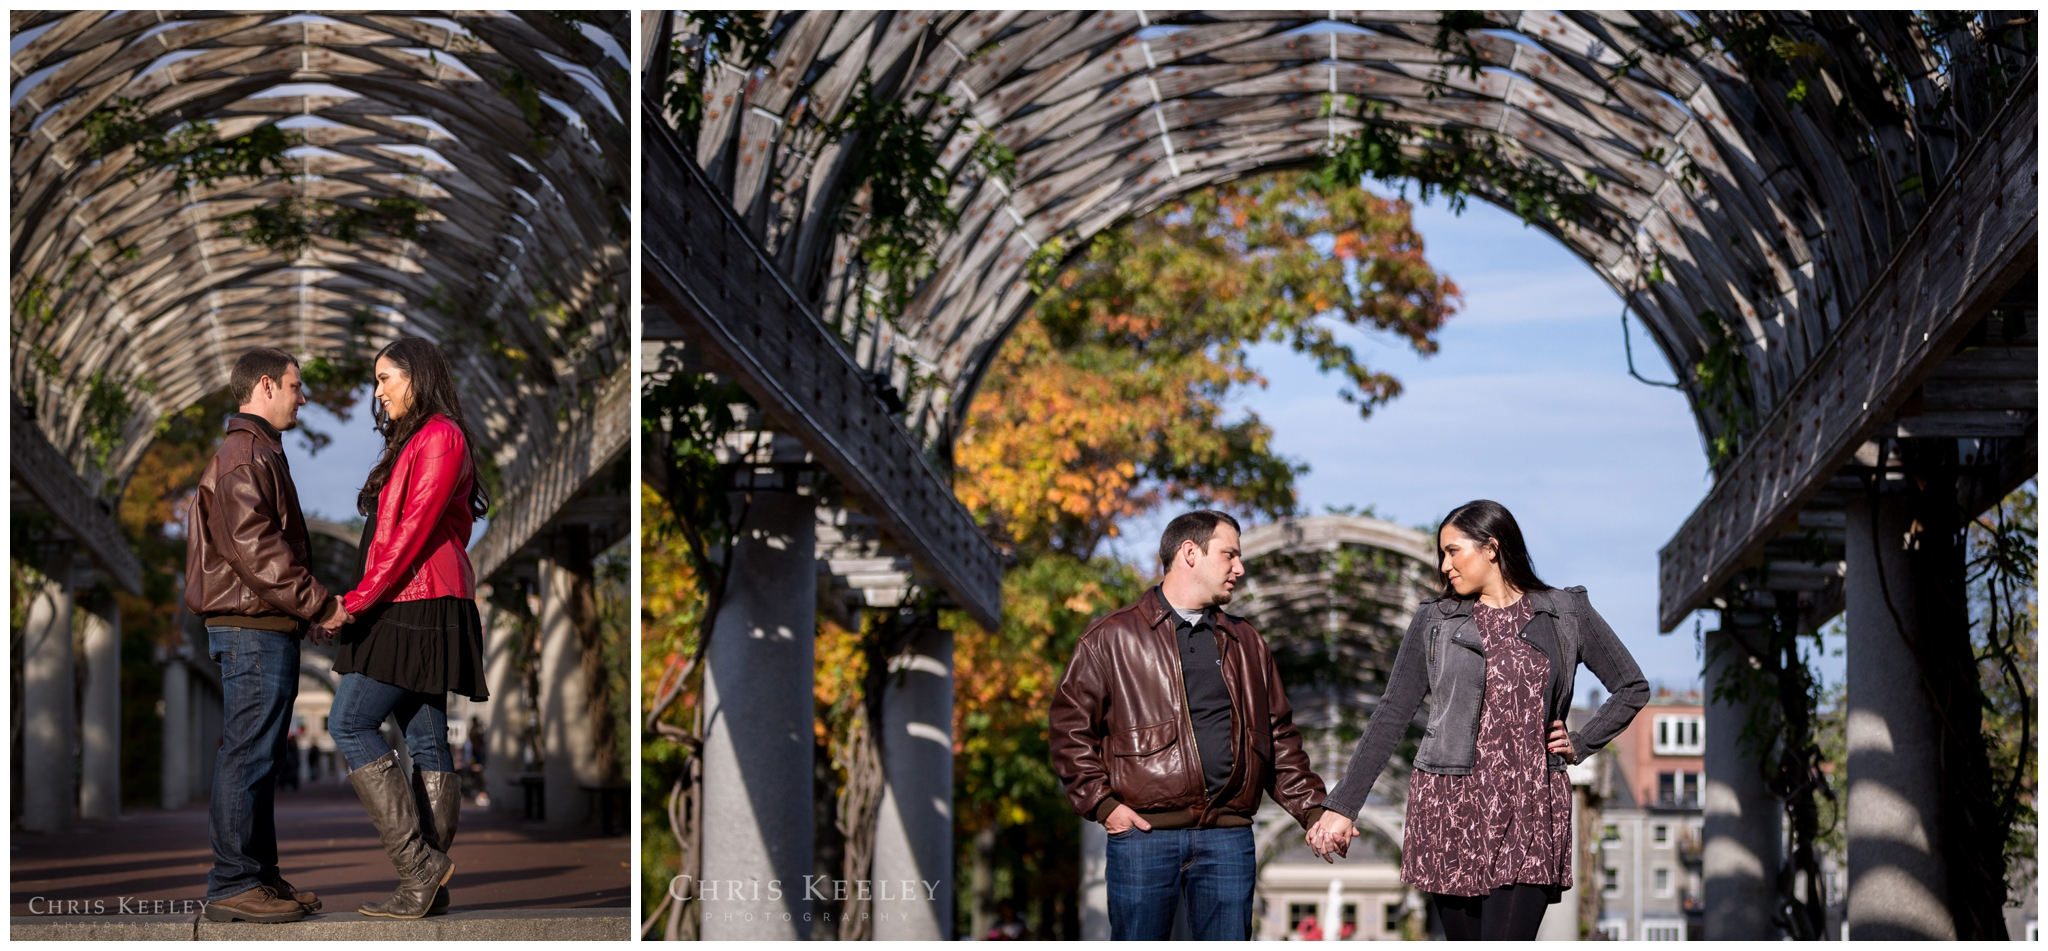 The archway at Christopher Columbus Park in Boston offers a great backdrop for your engagement pictures, and anyone who knows Boston will recognize this iconic setting.